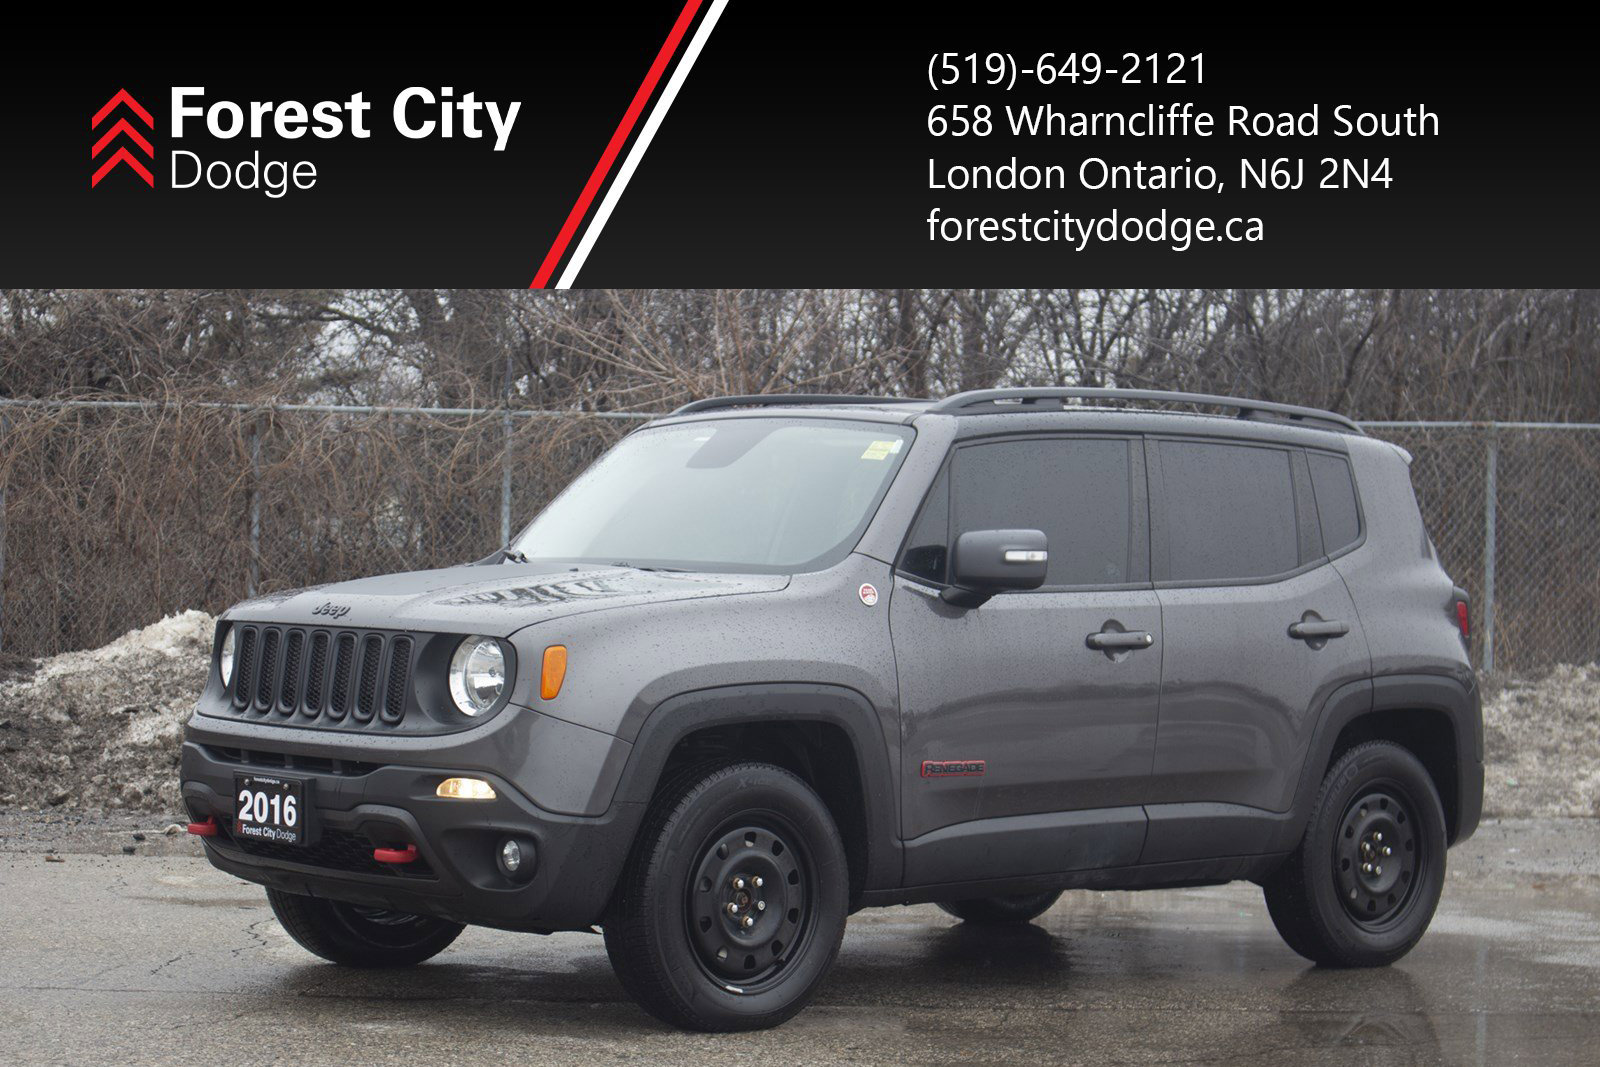 Pre-Owned 2016 Jeep Renegade Trailhawk, AUTOMATIC,LEATHER INTERIOR